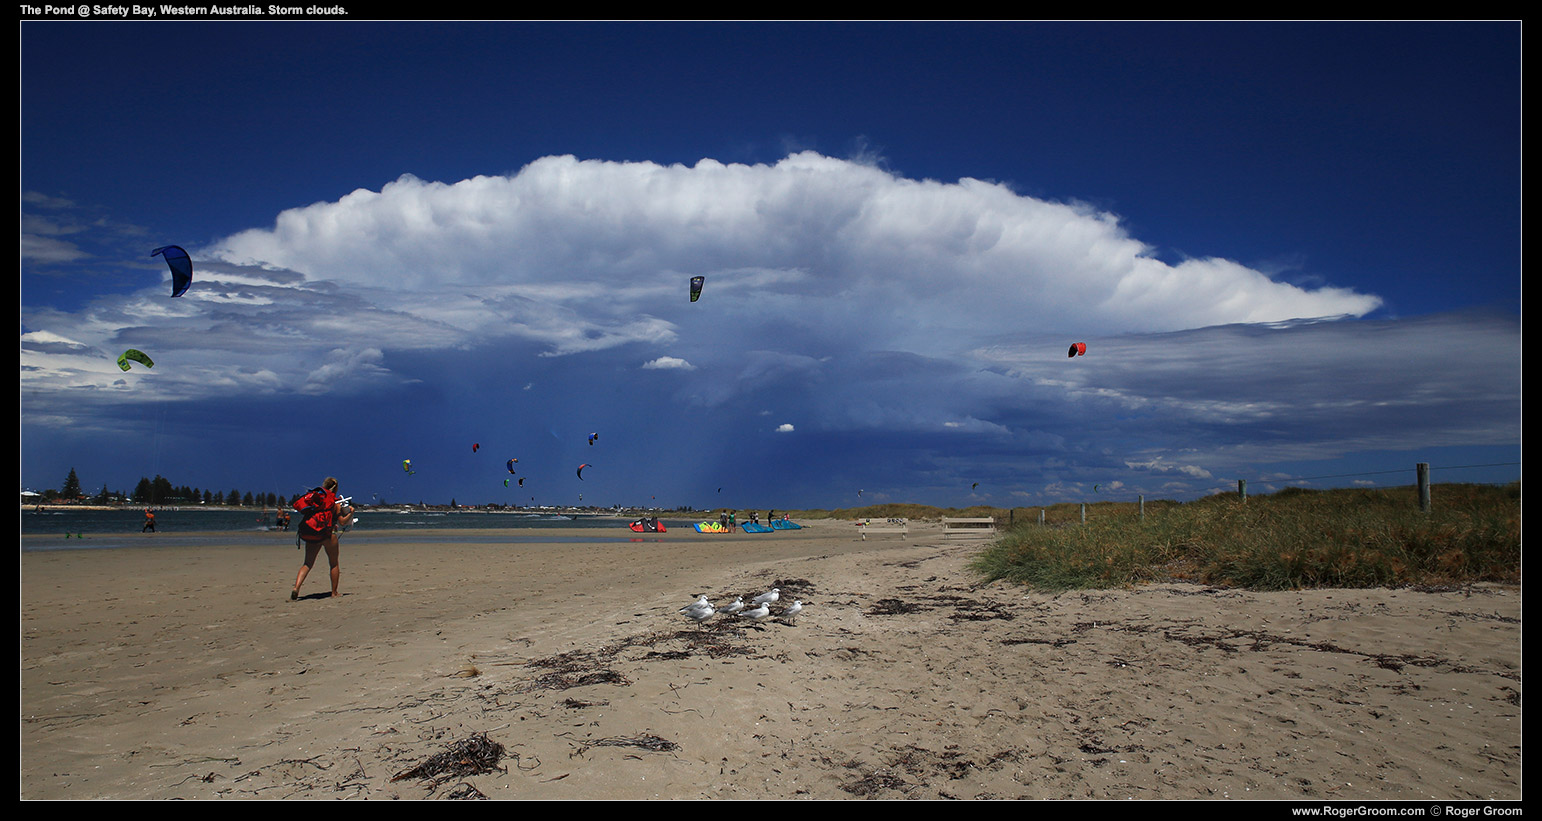 Storm clouds in the distance at The Pond @ Safety Bay, Western Australia. Kite Surfers abound!